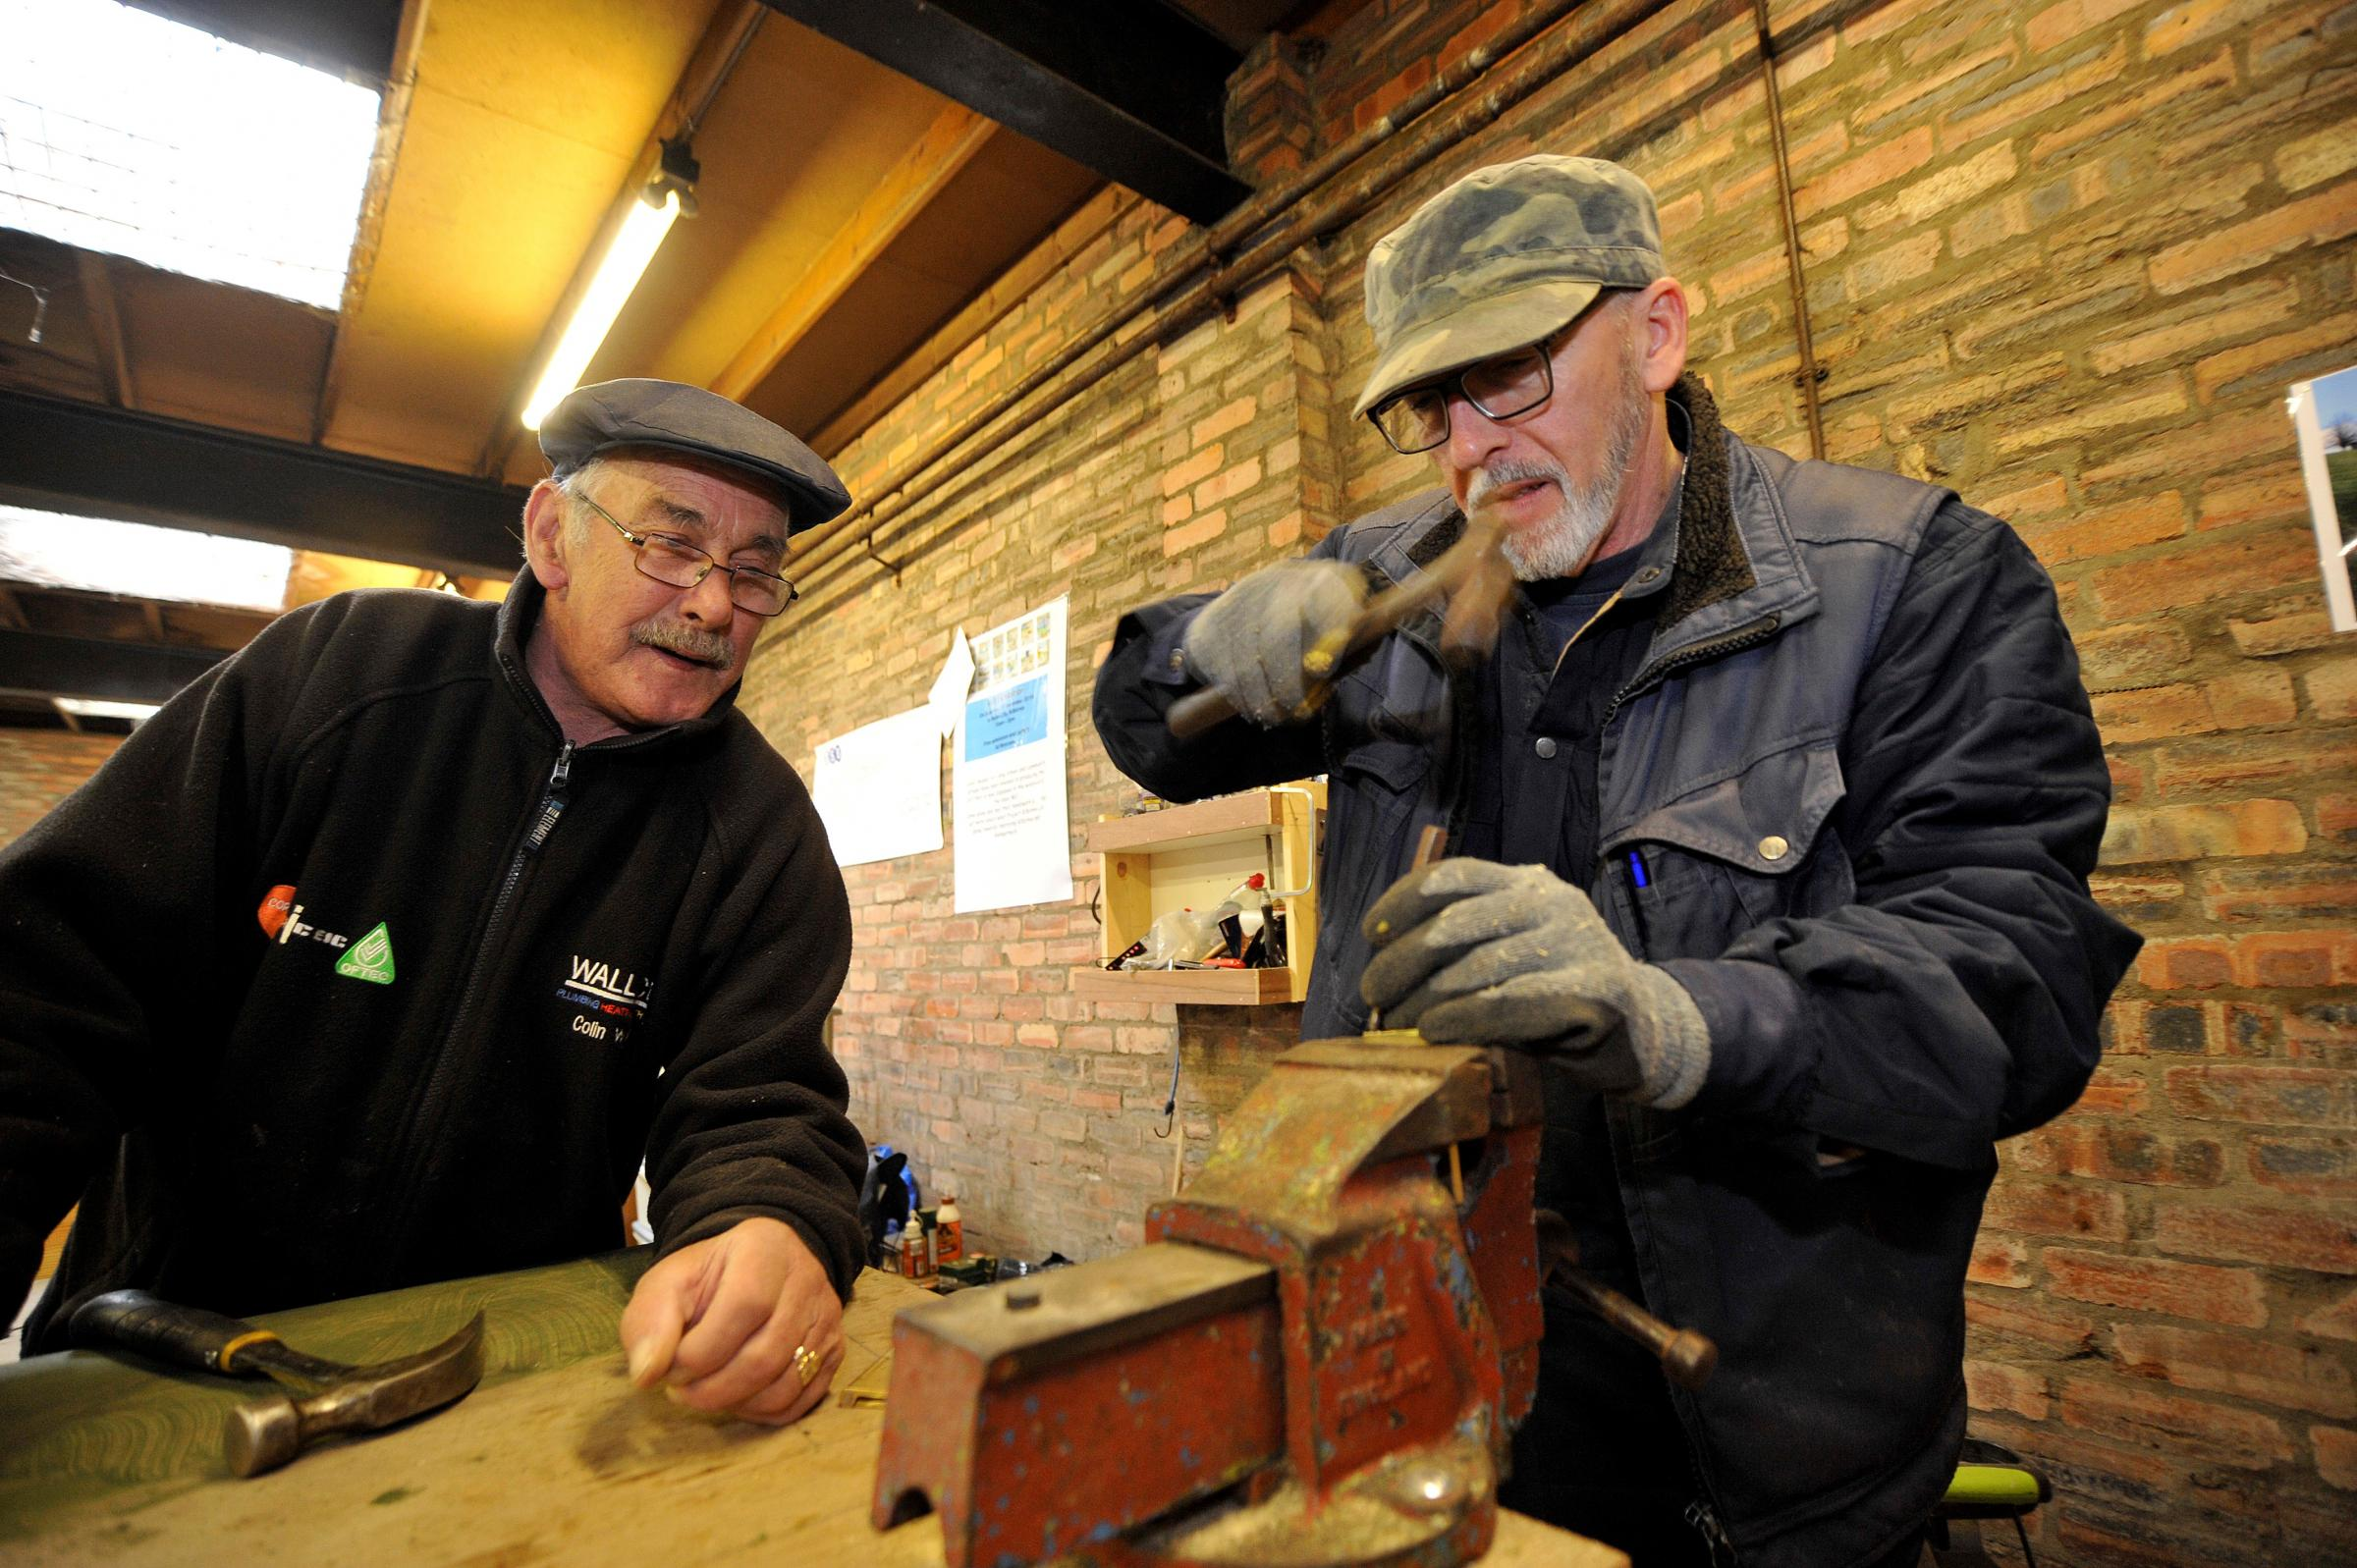 Men's Shed groups are being set up across North Ayrshire